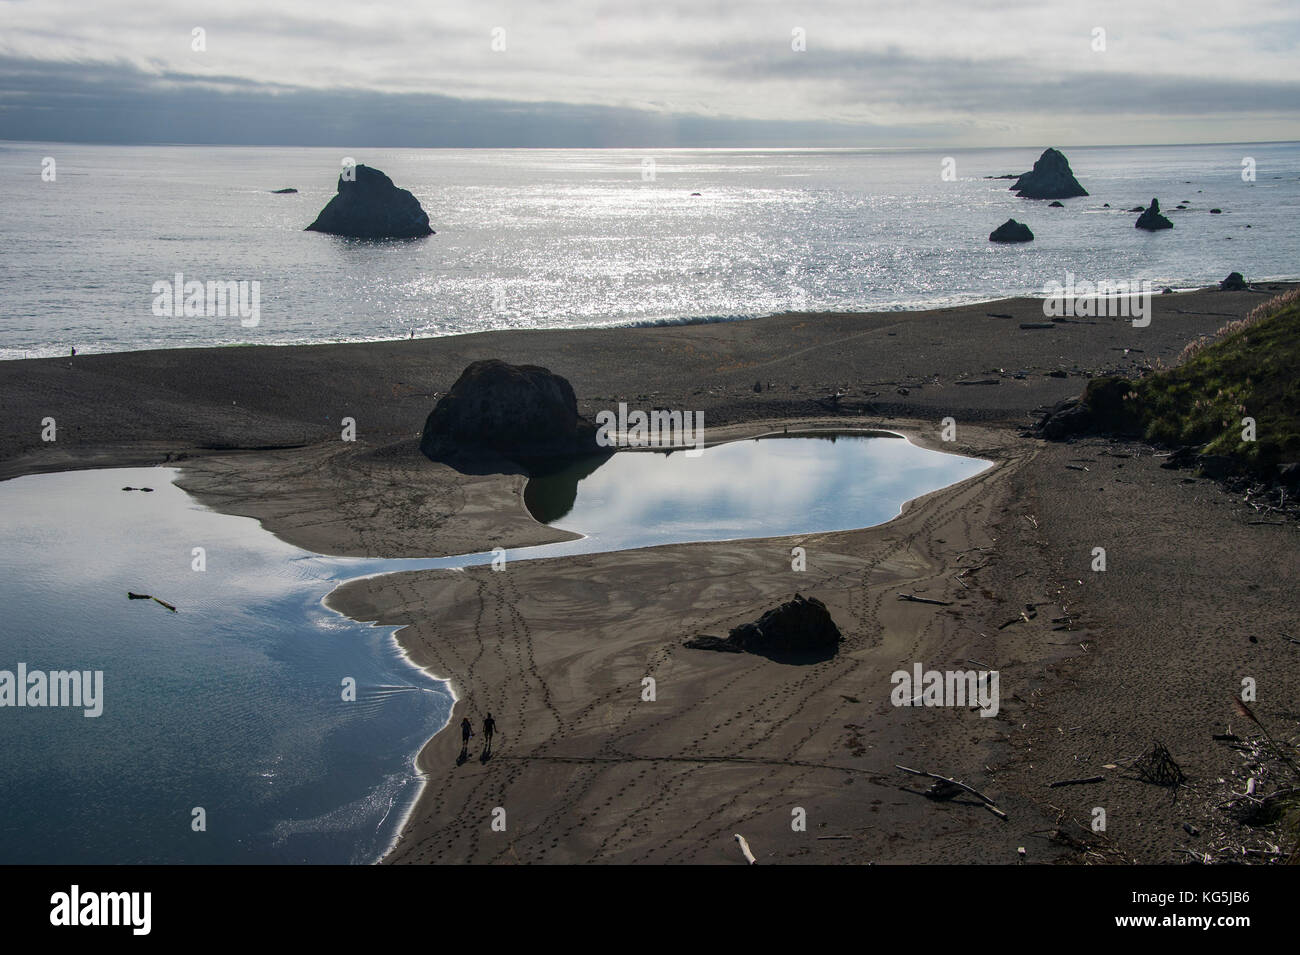 People walking on a sandbar where the Russian river flowing in the Pacific, Northern California, USA - Stock Image